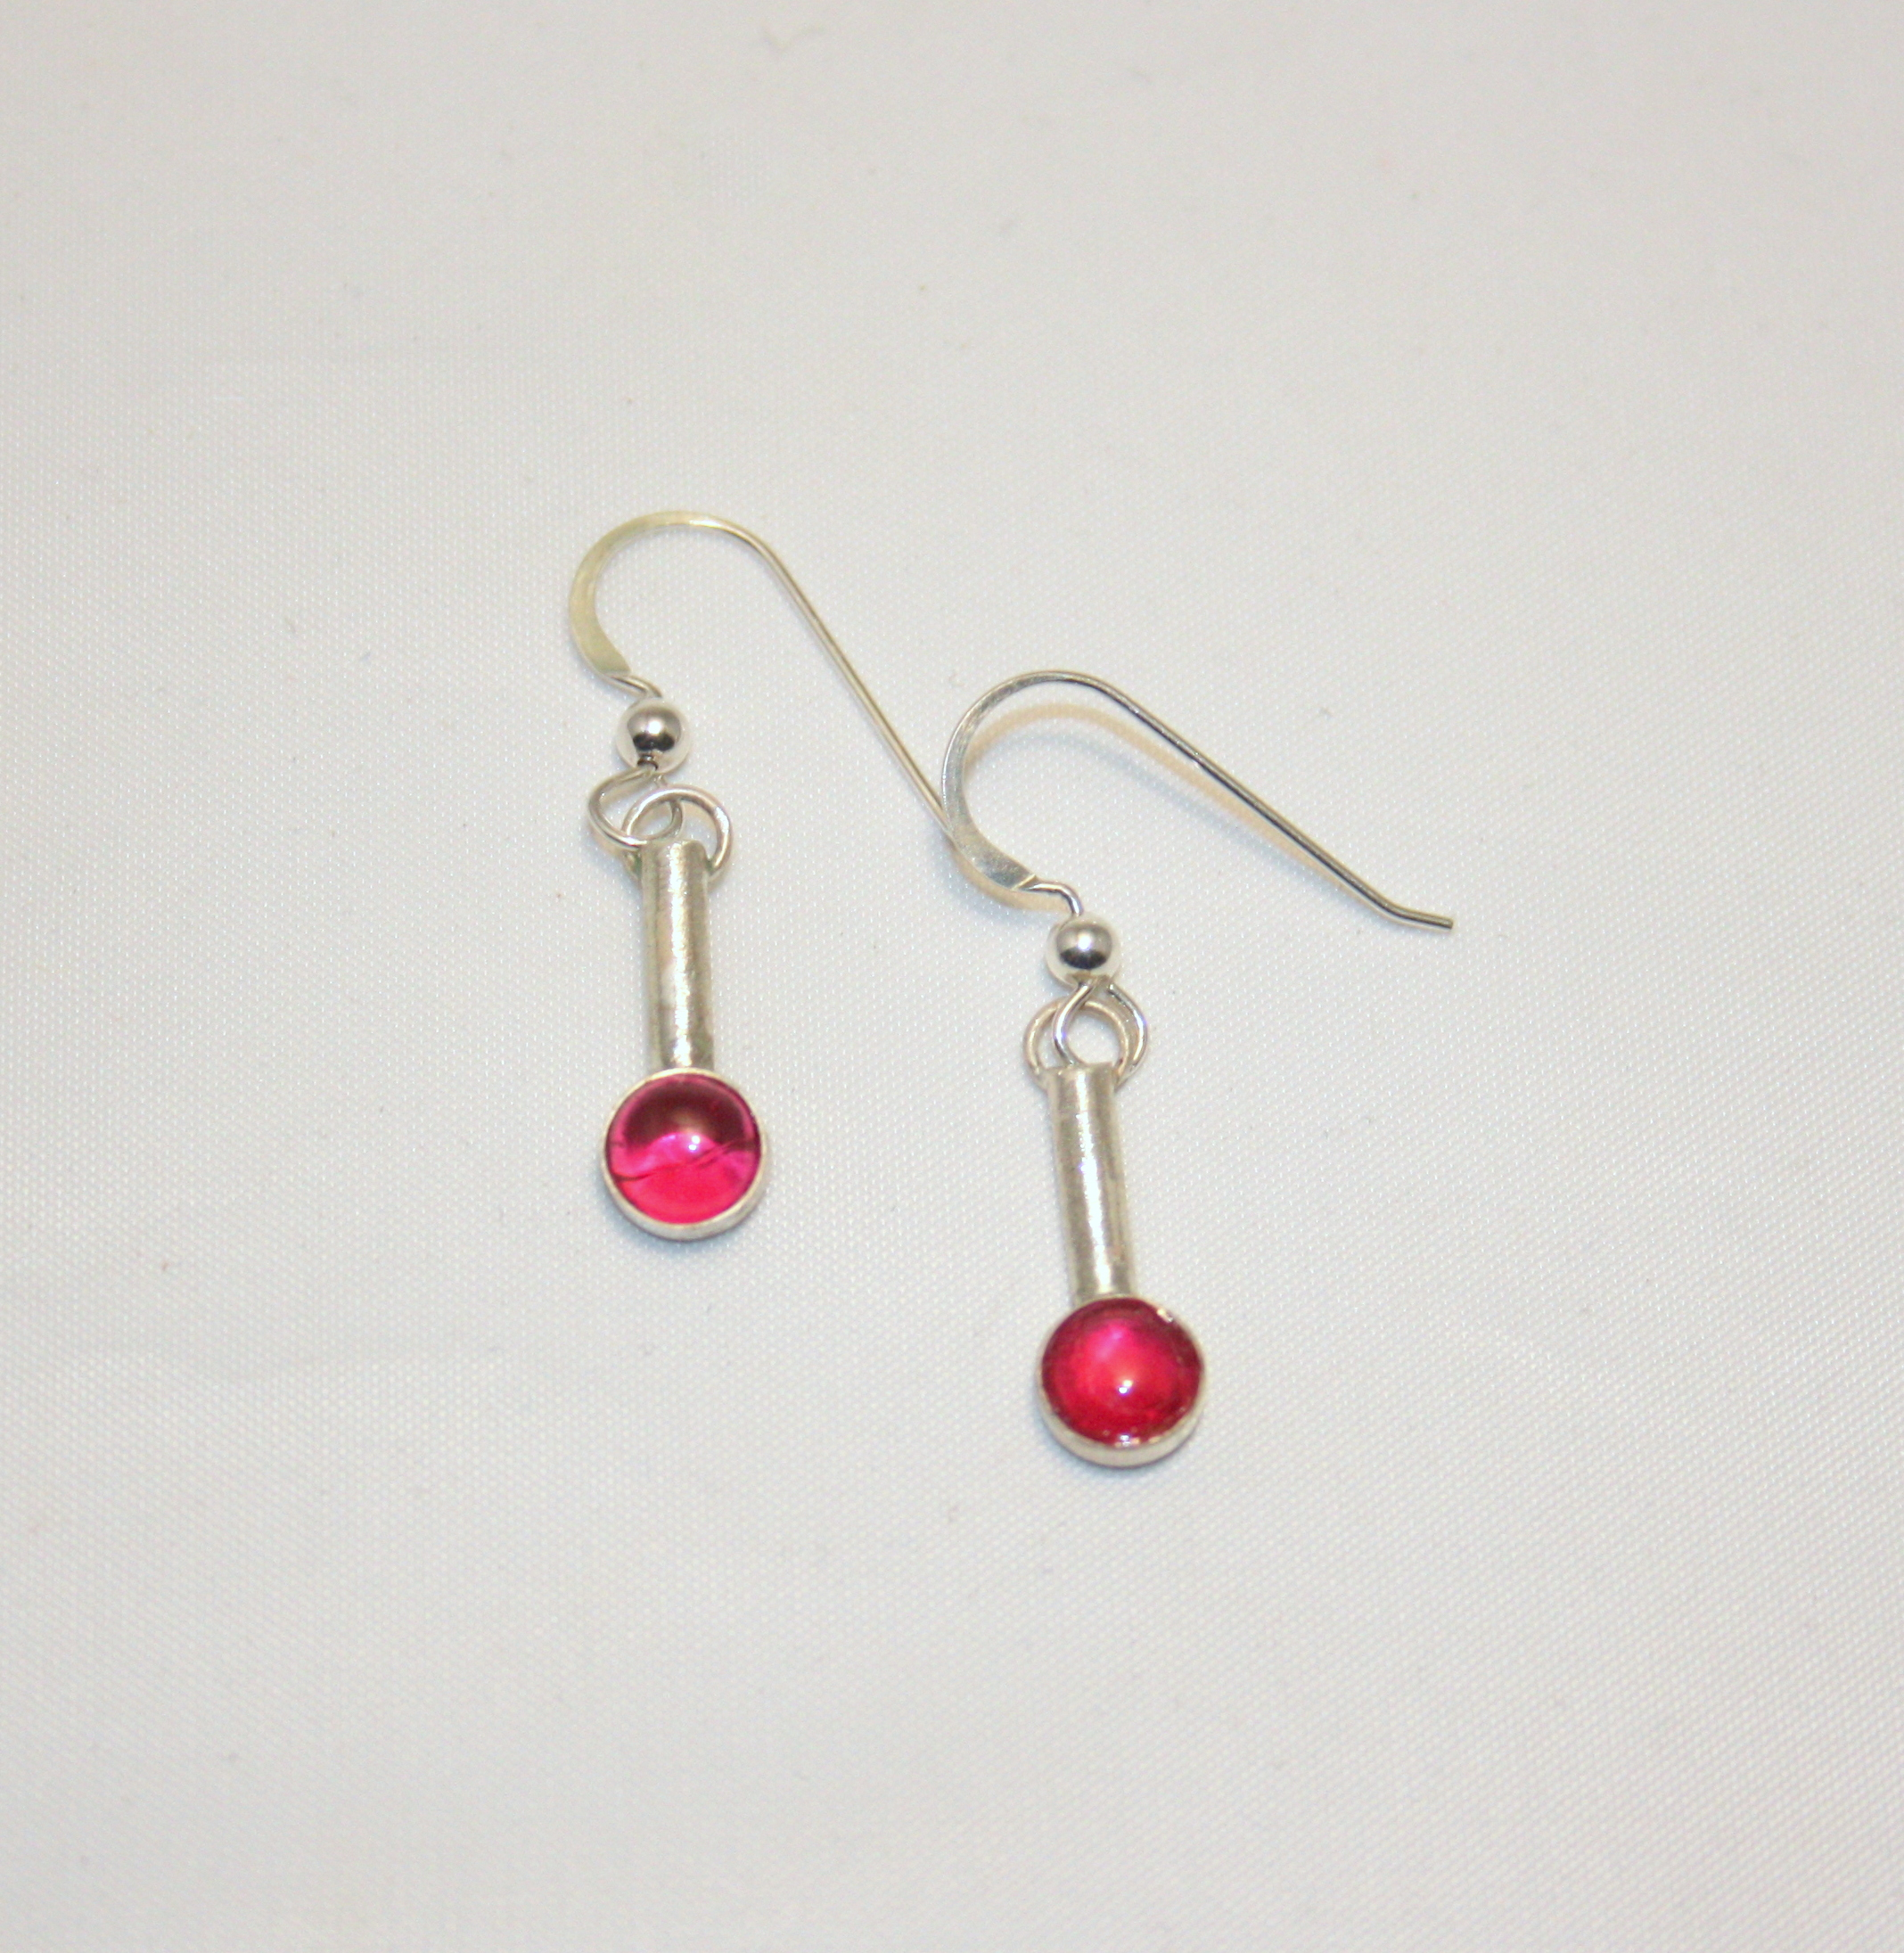 Ruby & Silver Earrings